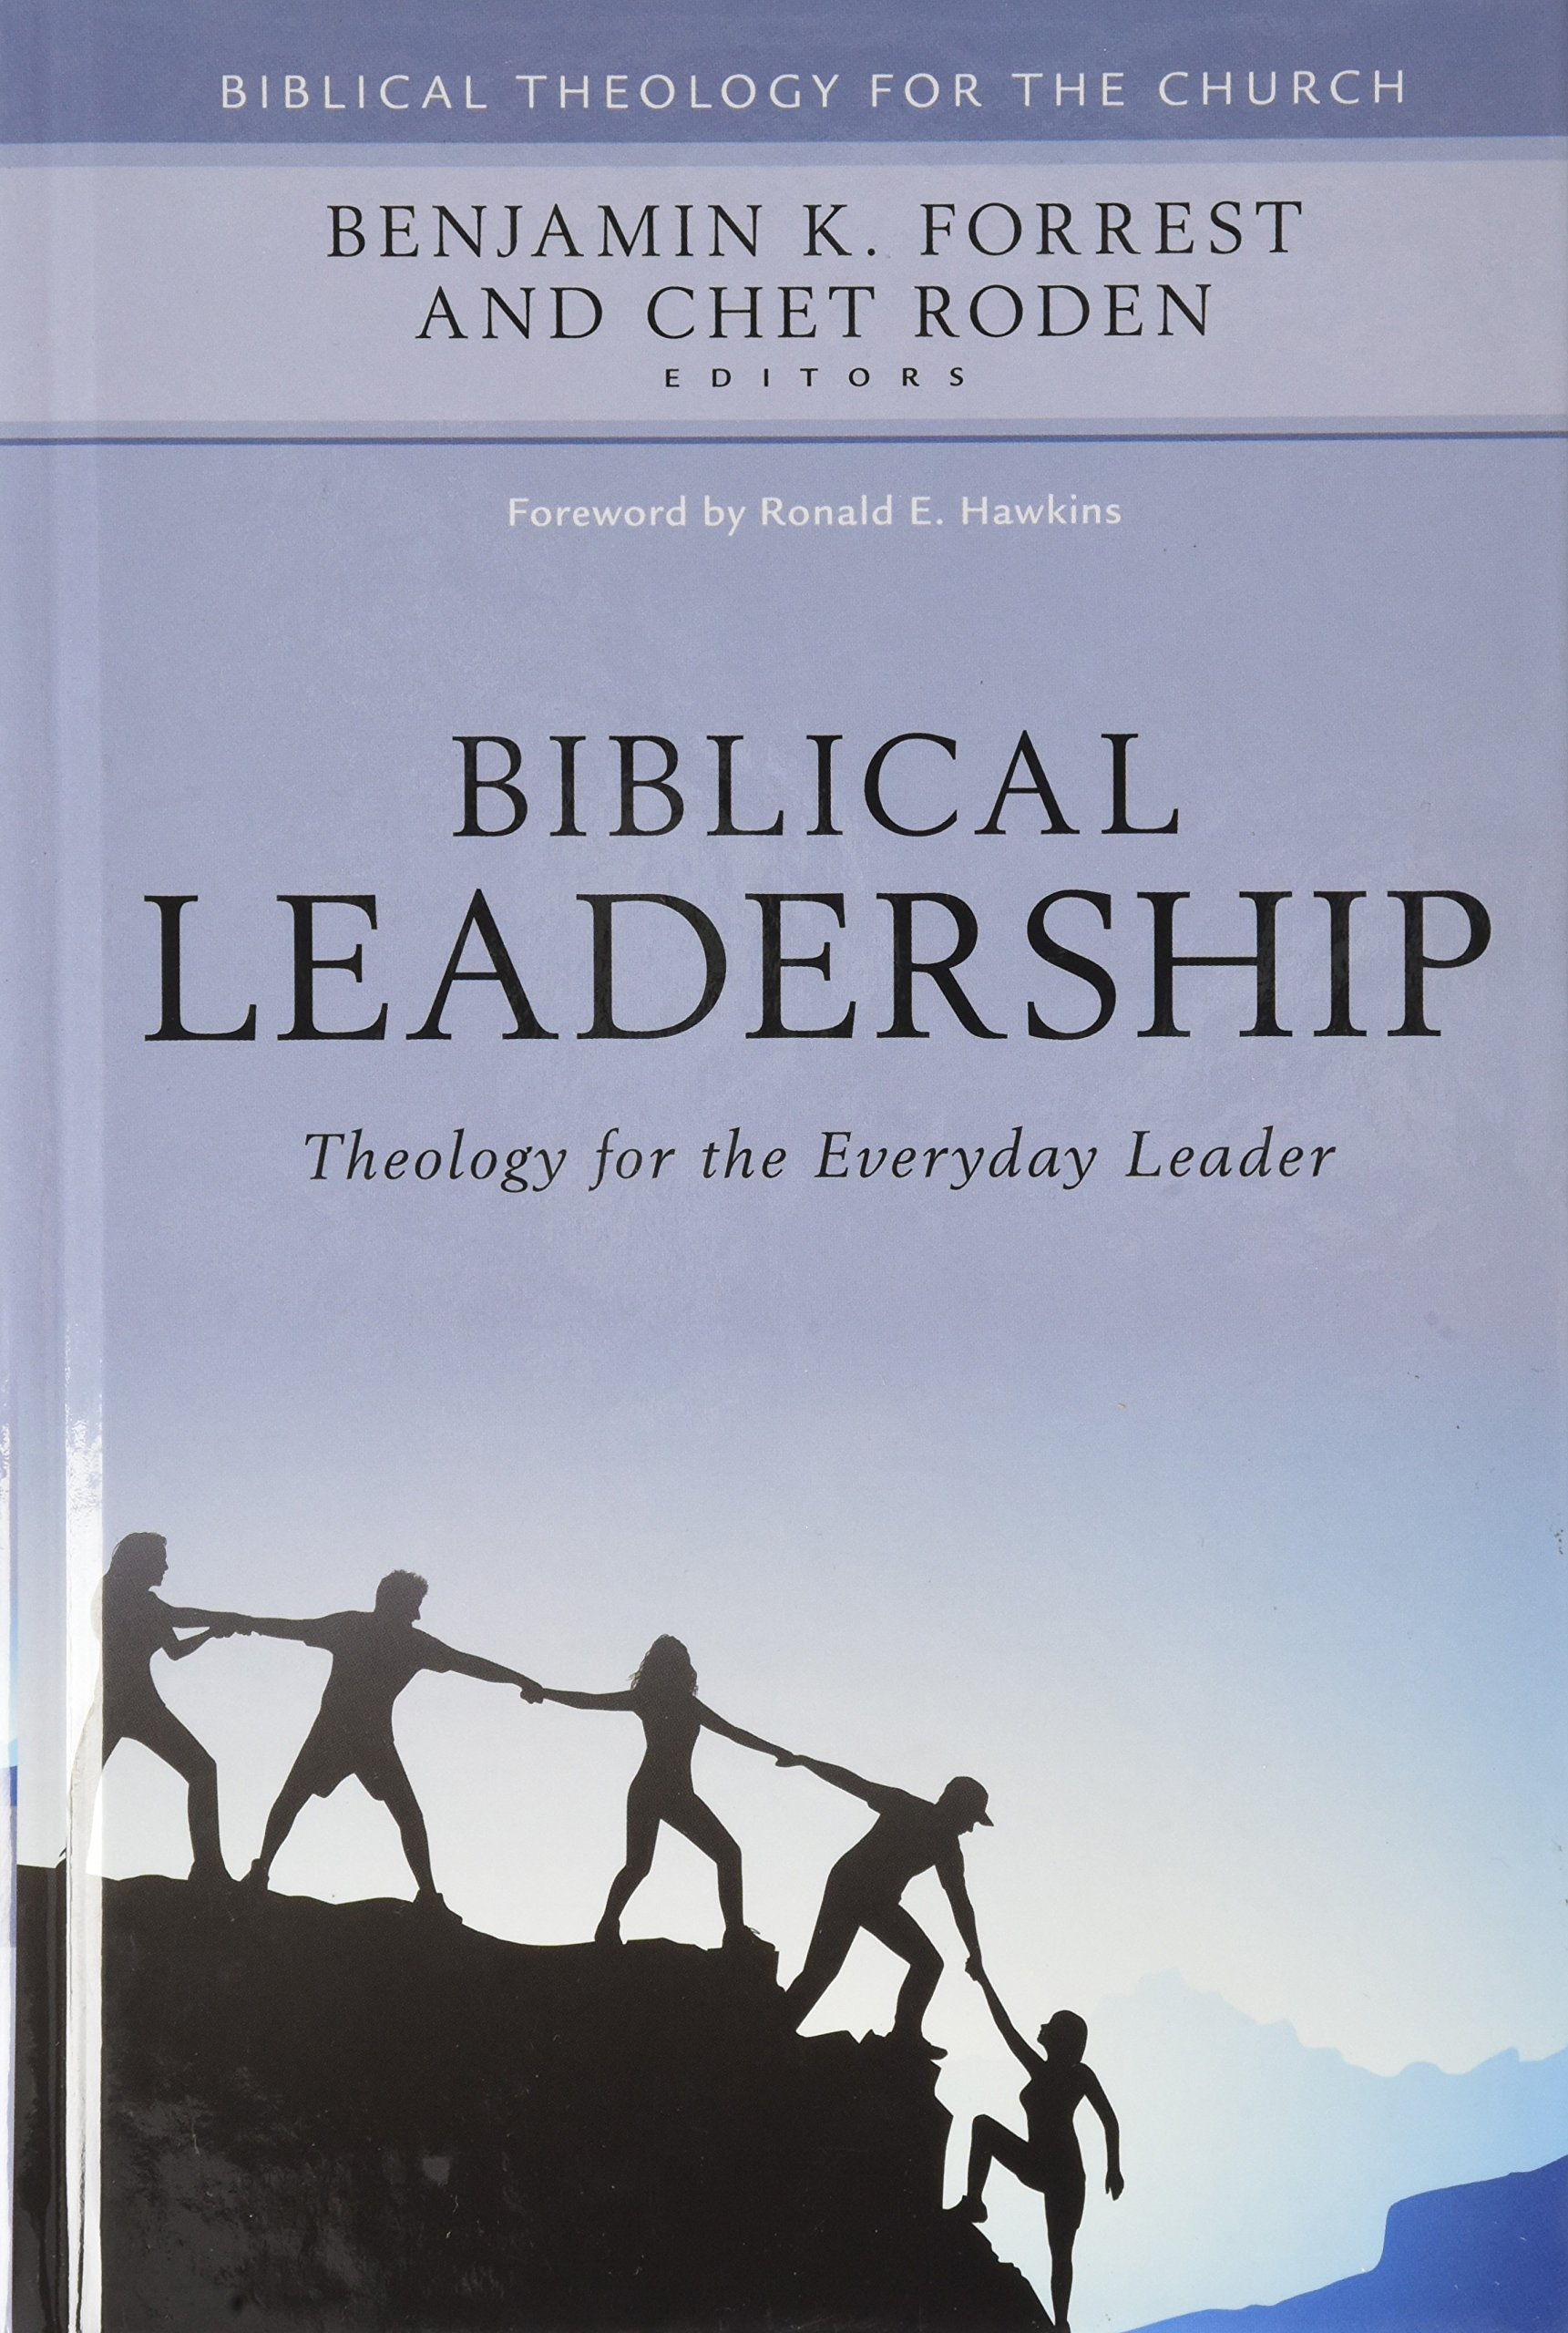 Biblical leadership theology for the everyday leader biblical biblical leadership theology for the everyday leader biblical theology for the church benjamin forrest chet roden ronald hawkins 9780825443916 fandeluxe Images